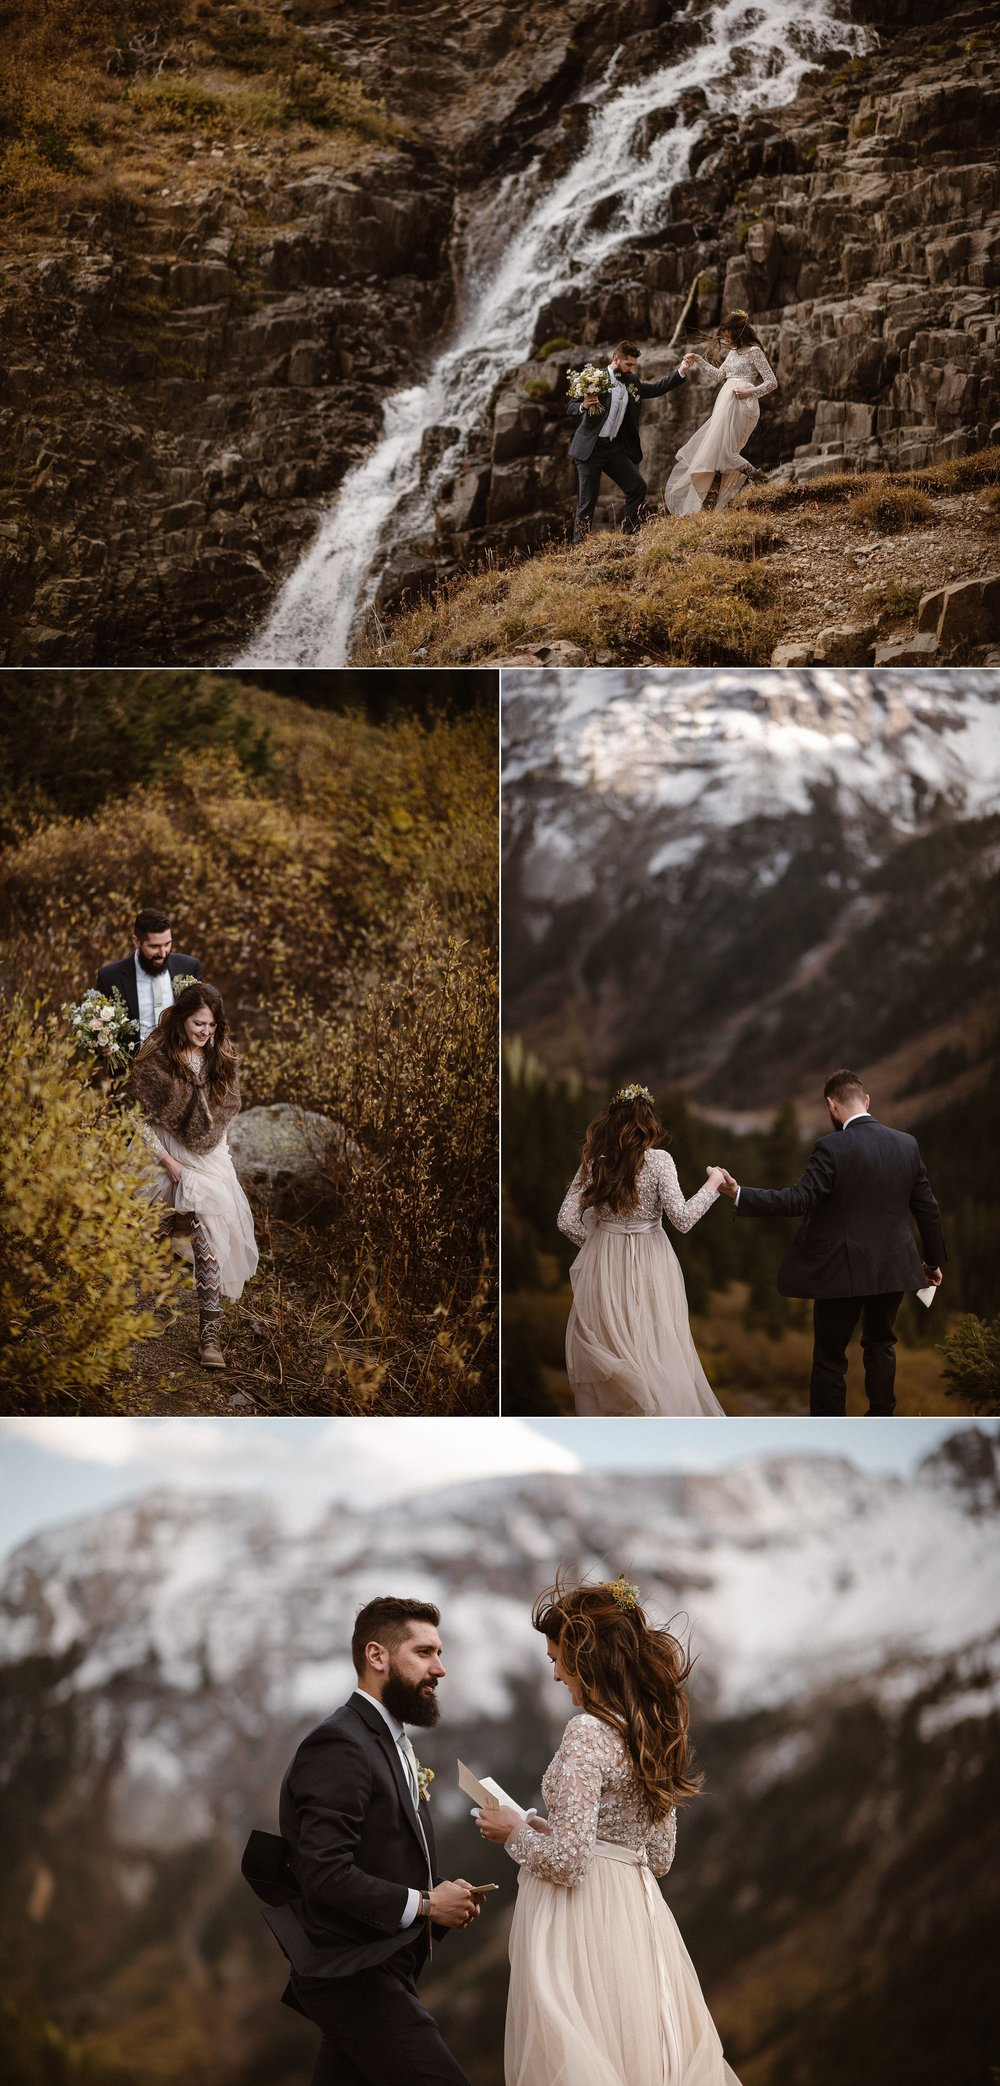 Carefully helping Jen navigate the rocky trail in her wedding dress, Dan offered his hand as they made their way to the perfect spot for their elopement ceremony. Overlooking Ouray, Colorado and high in the San Juan Mountains they privately began their intimate ceremony. Photos of this emotional hiking elopement by traveling wedding photographer Maddie Mae.